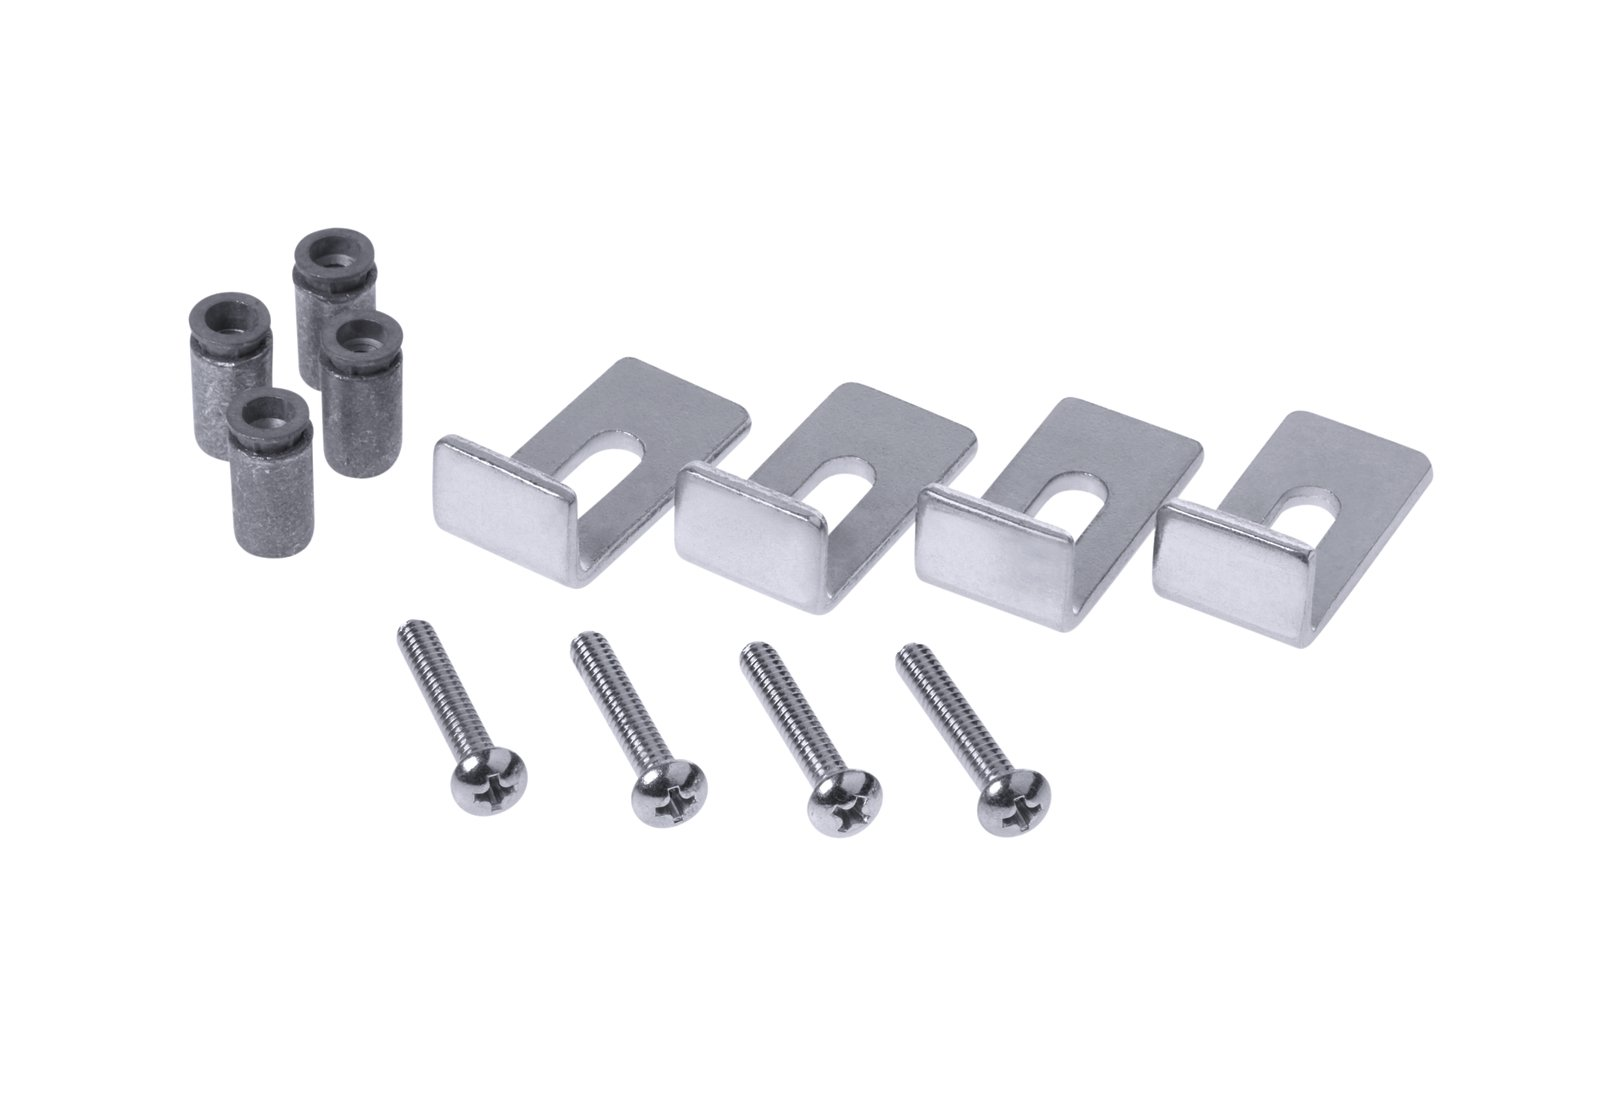 Kohler GP52047 Undercounter Sink Clips Clamp Accessory Pack by Kohler